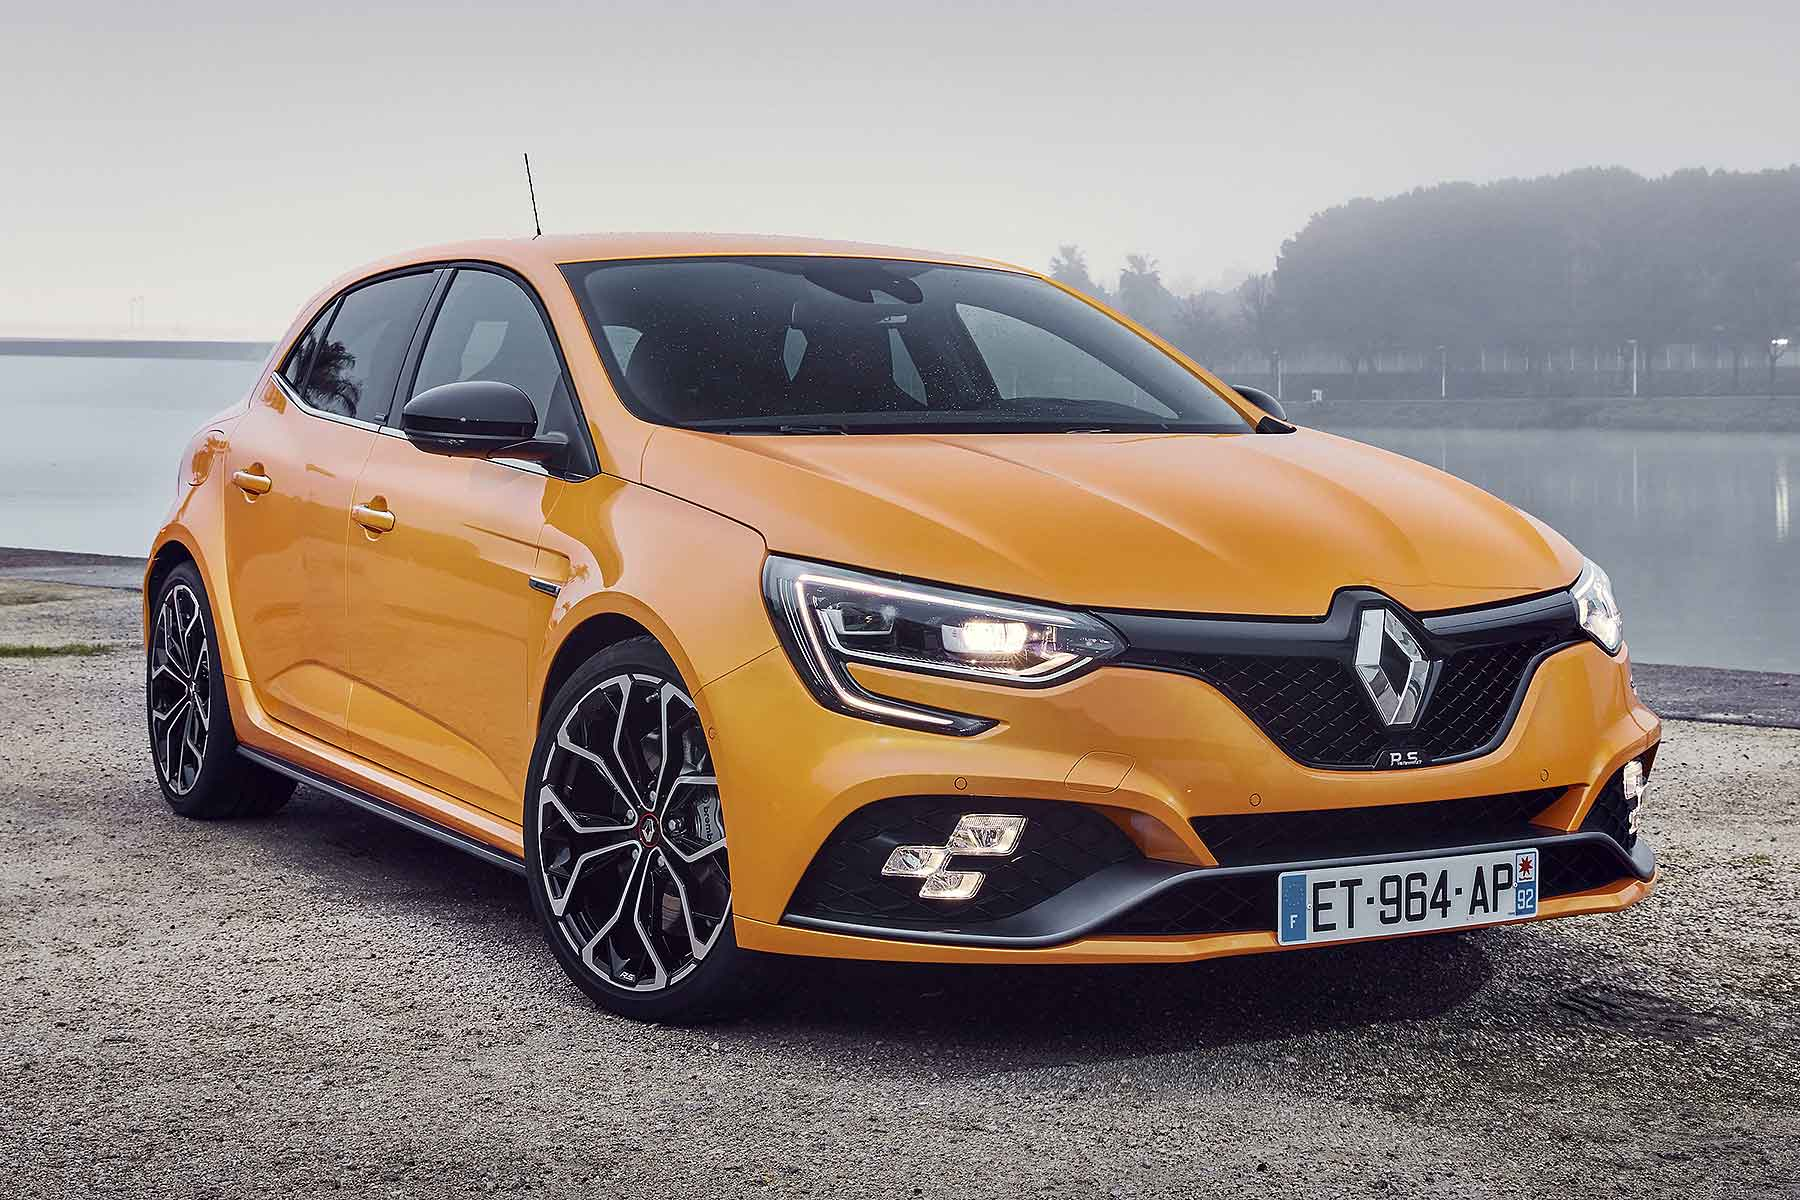 New 2018 Renault Megane R S Prices From 27 495 Motoring Research